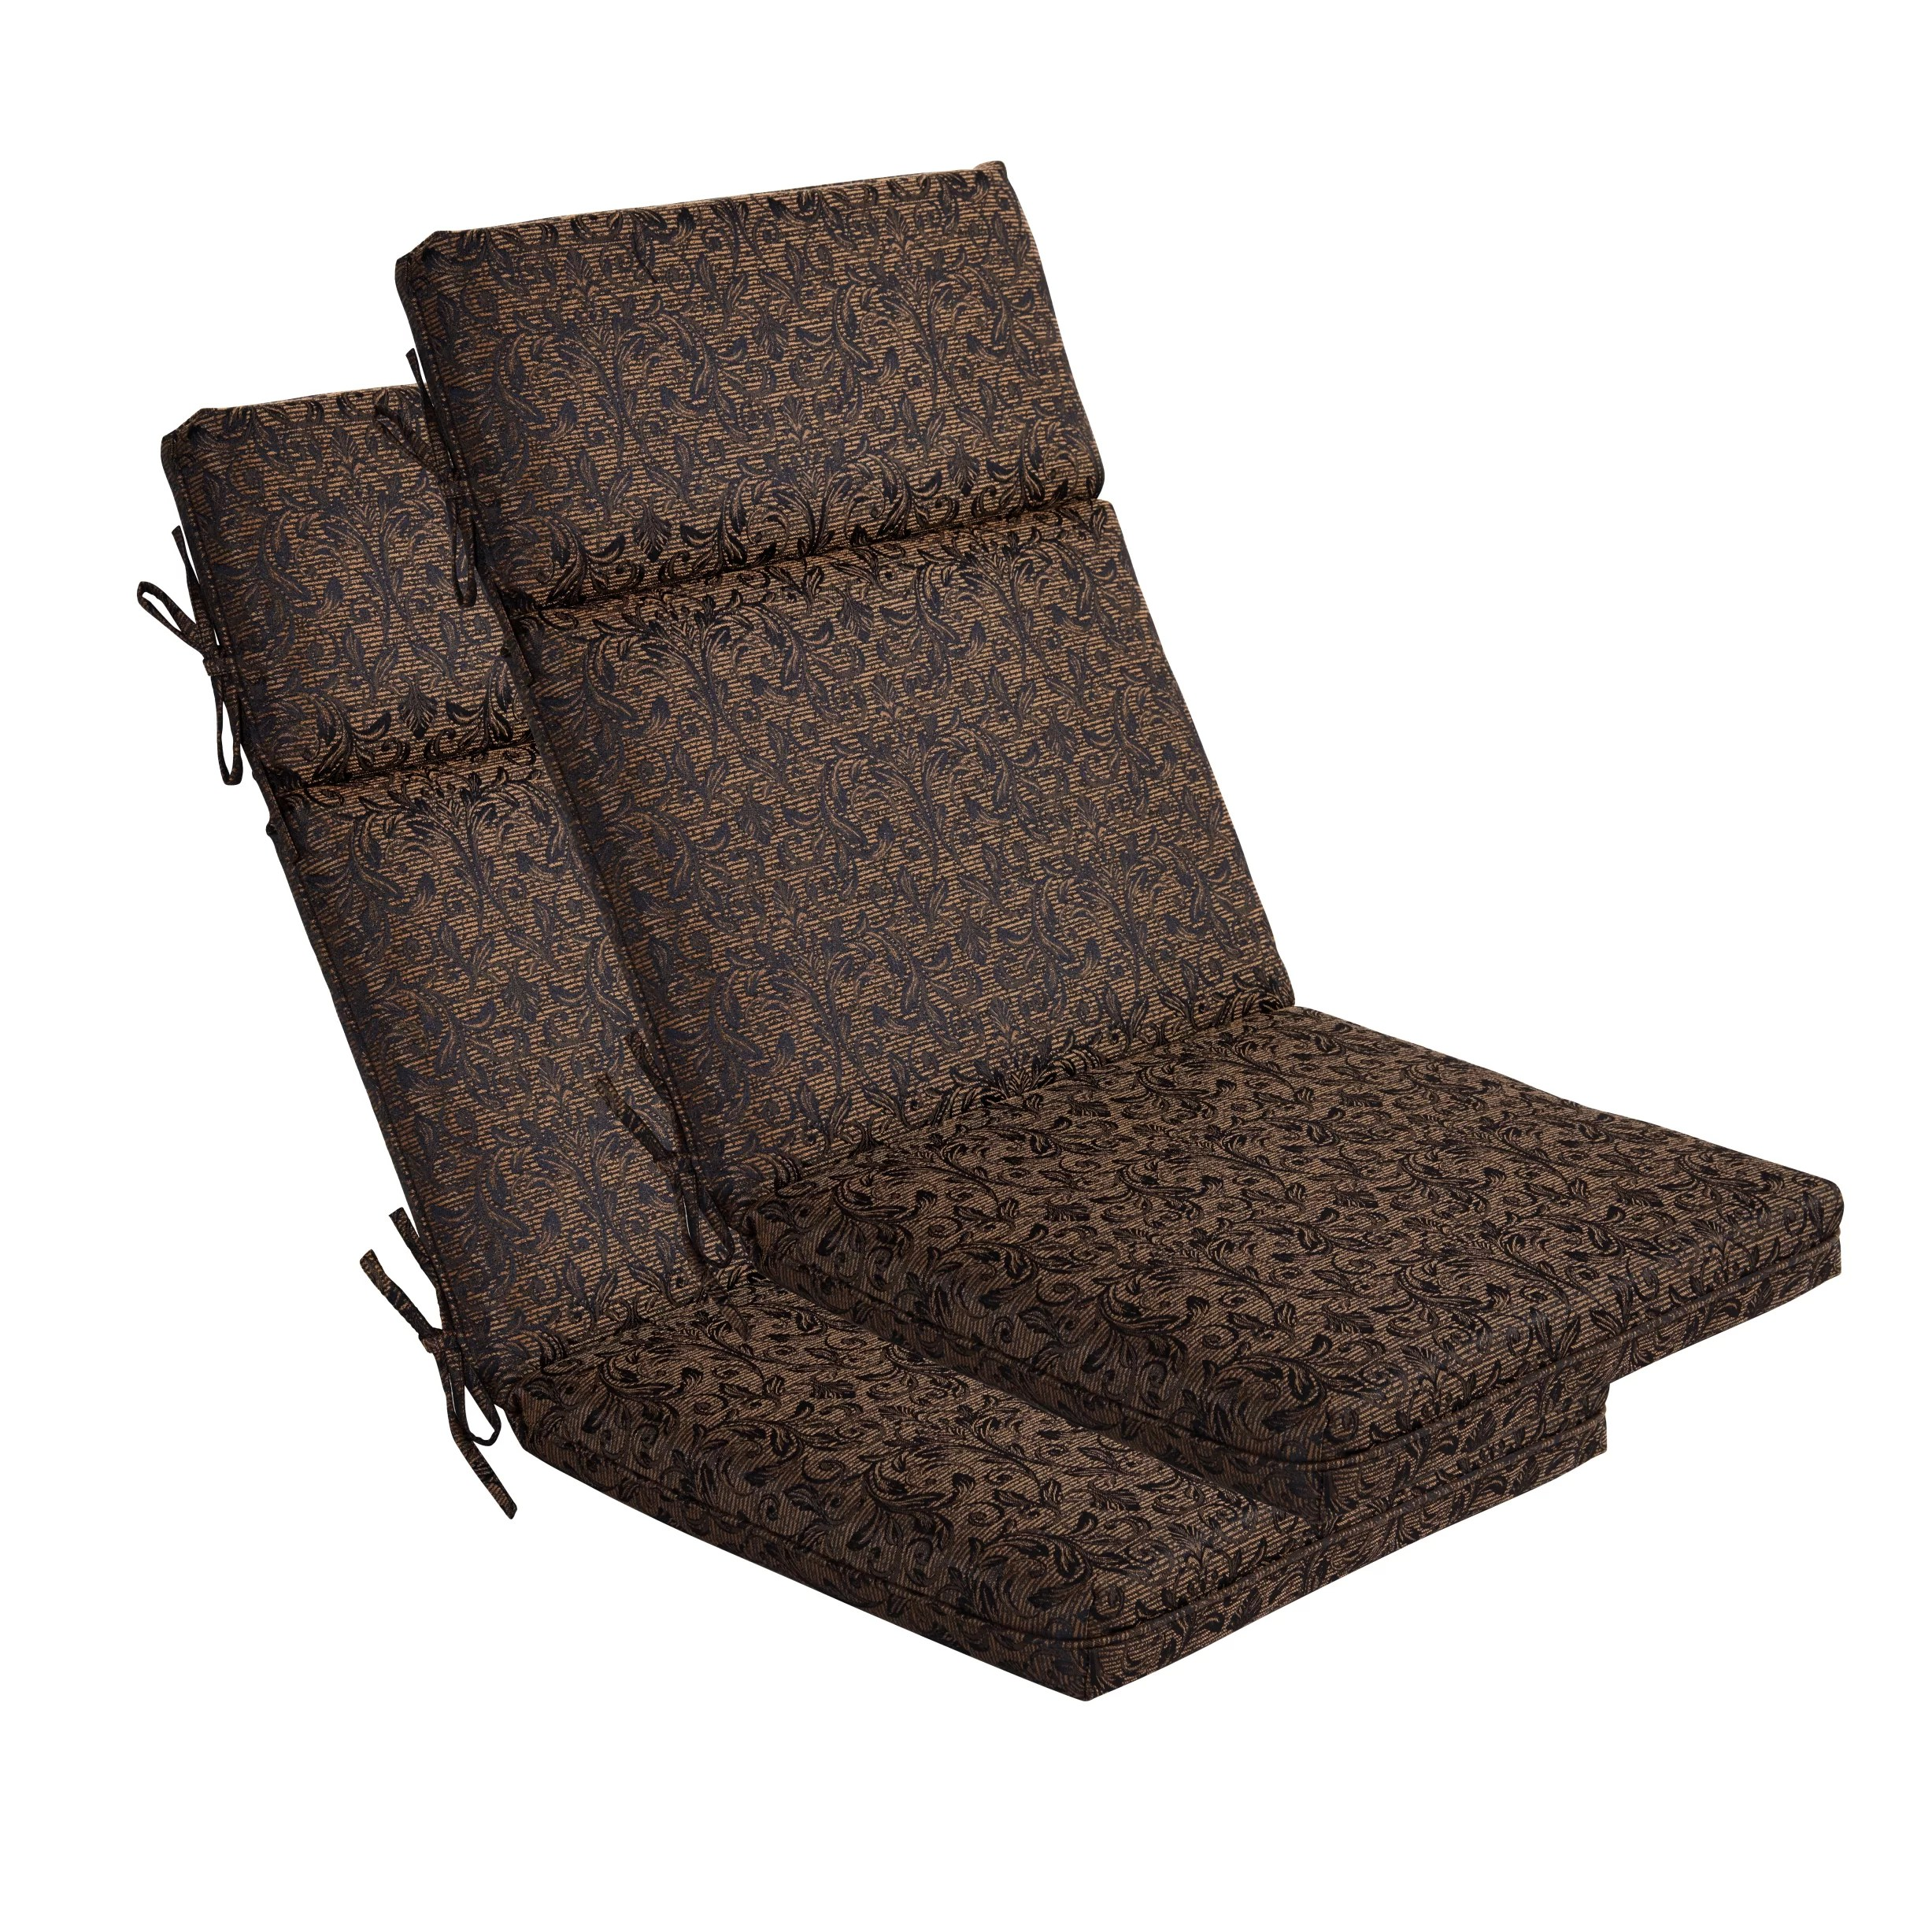 Outdoor Lounge Chair Cushions Bossima Outdoor Lounge Chair Cushion And Reviews Wayfair